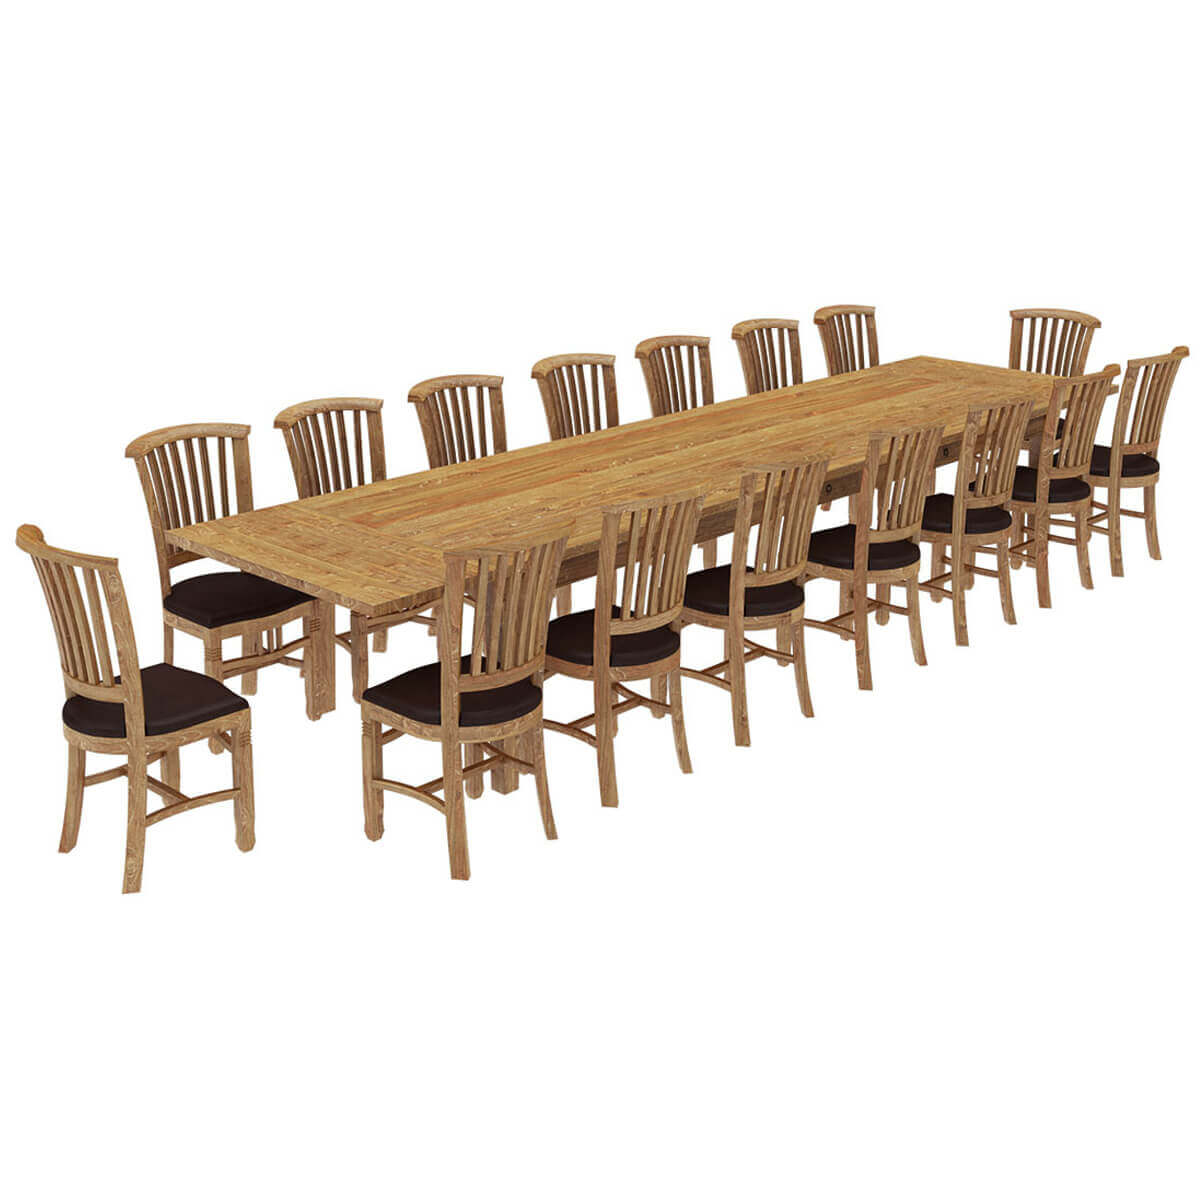 Brussels Reclaimed Wood 17 Piece Large Extendable Dining Table Set